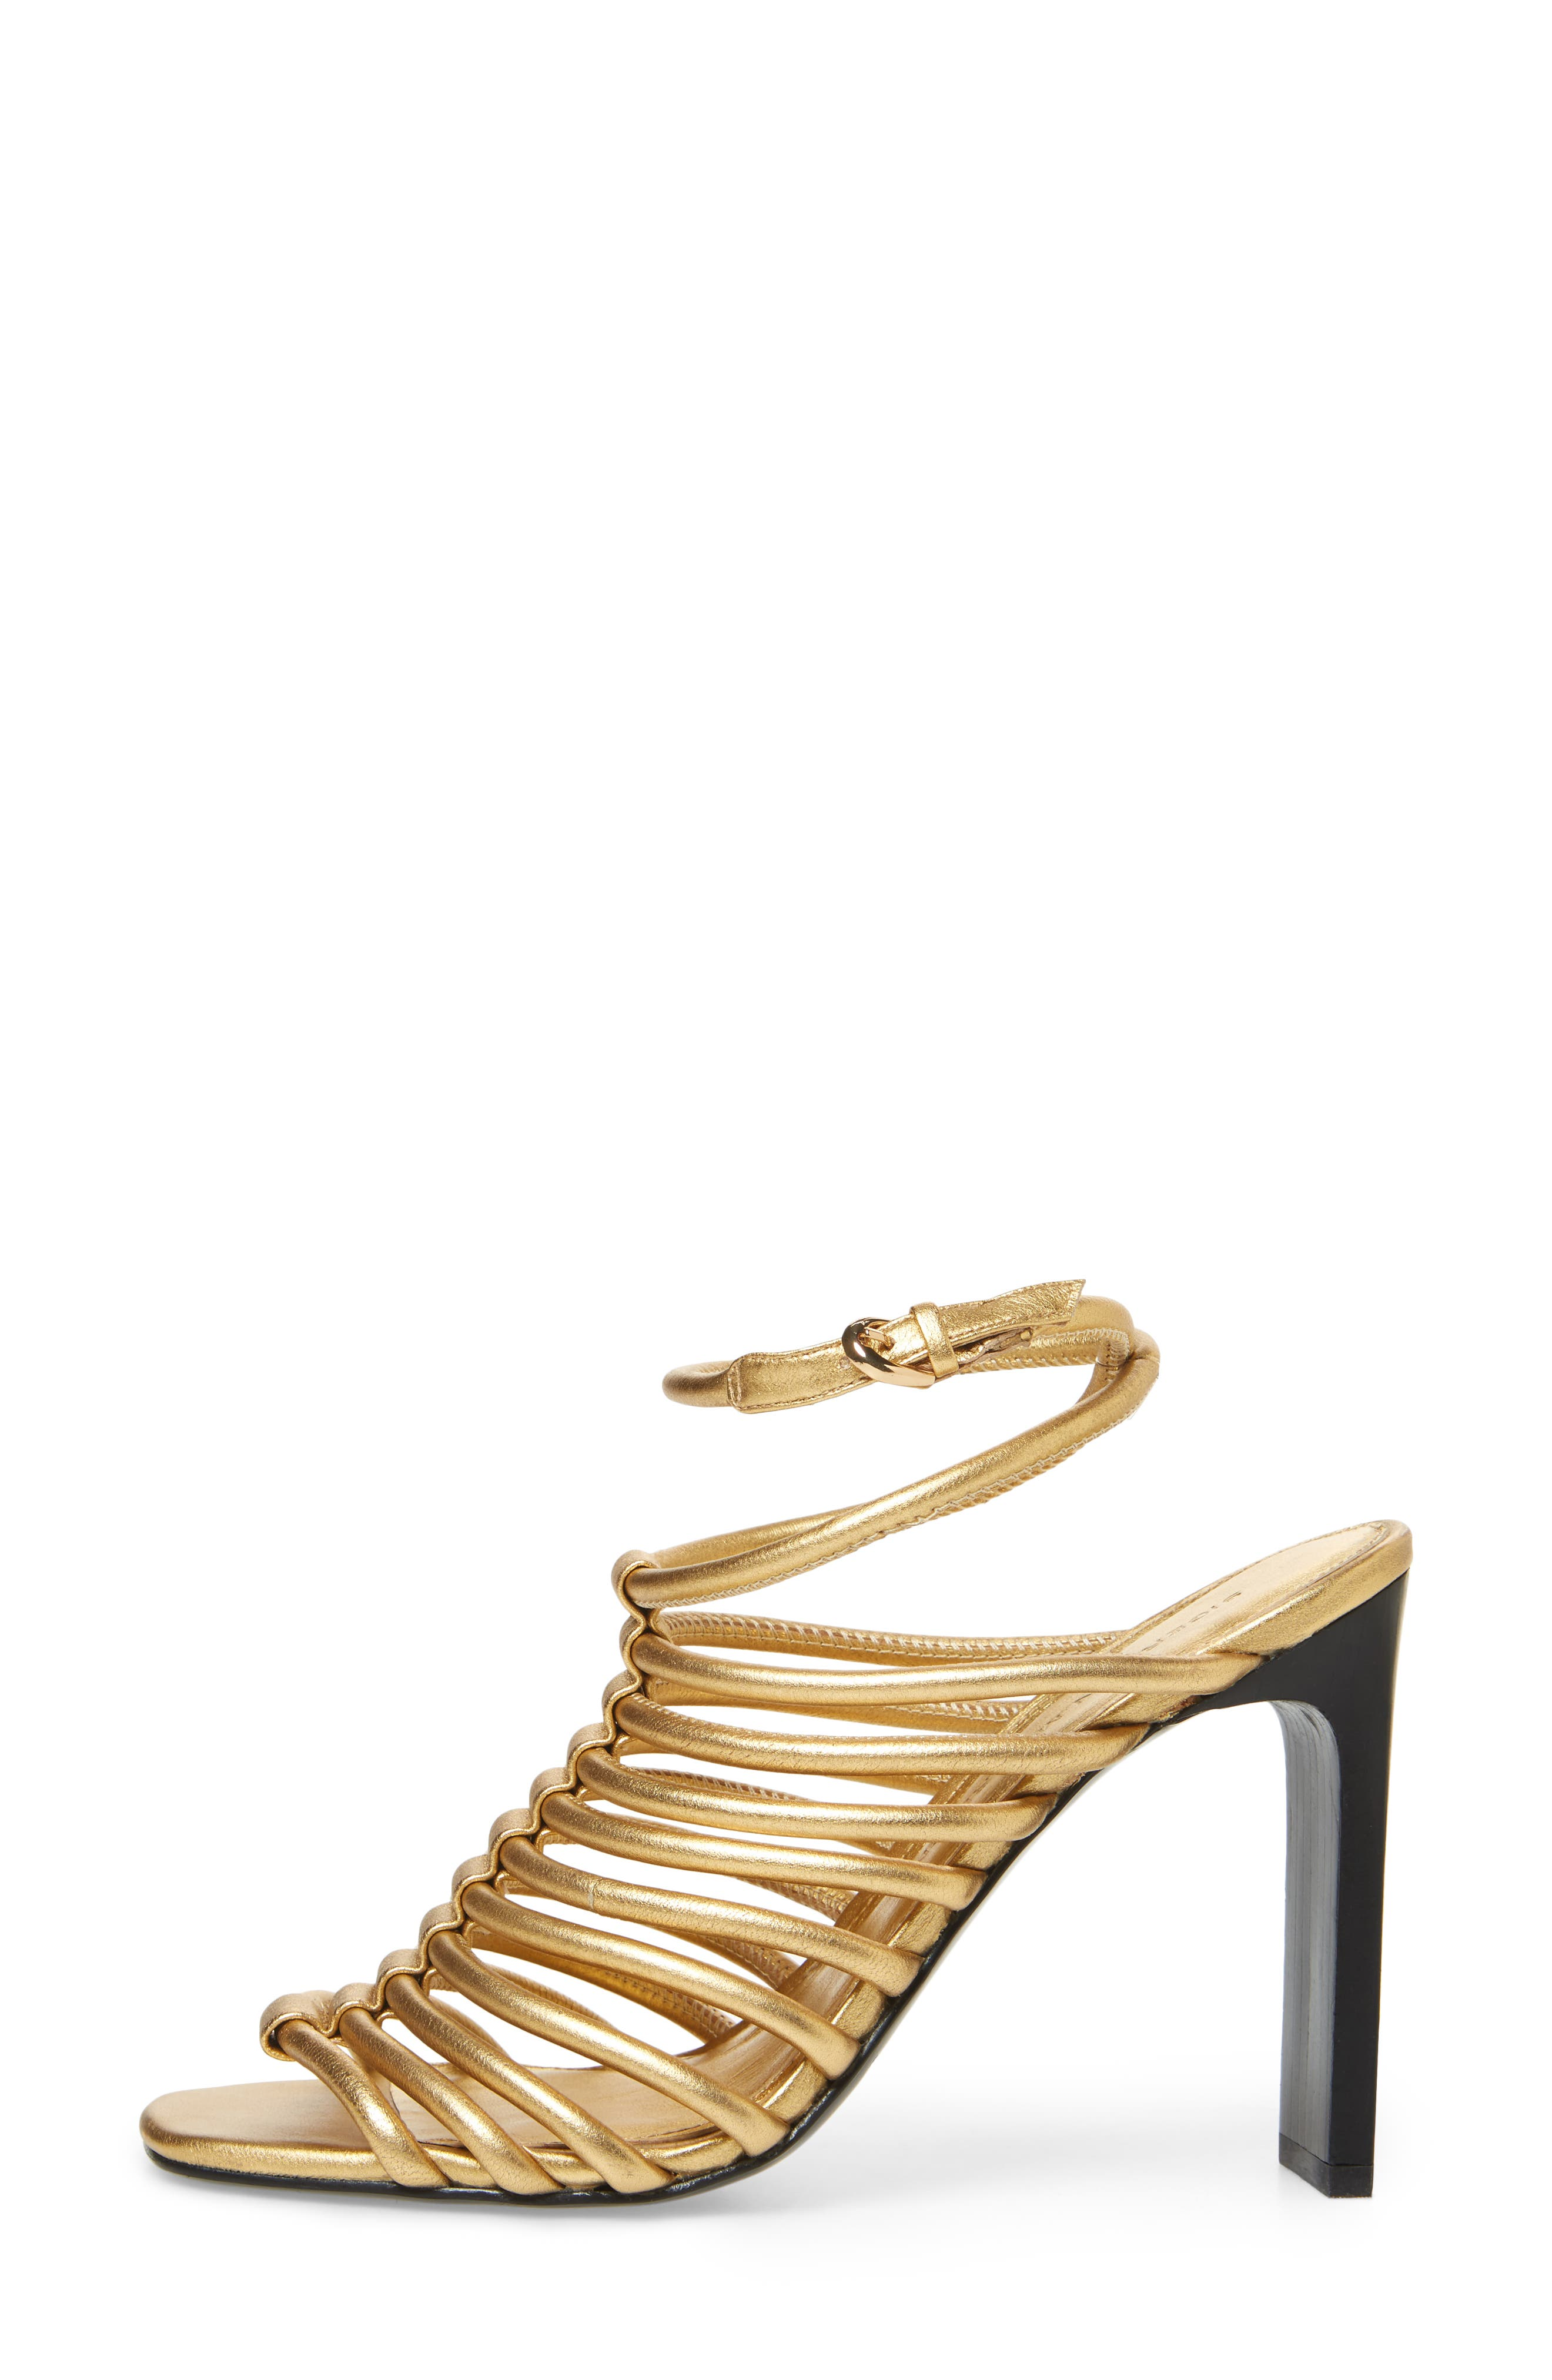 HH Caged Ankle Strap Sandal,                             Alternate thumbnail 2, color,                             Gold